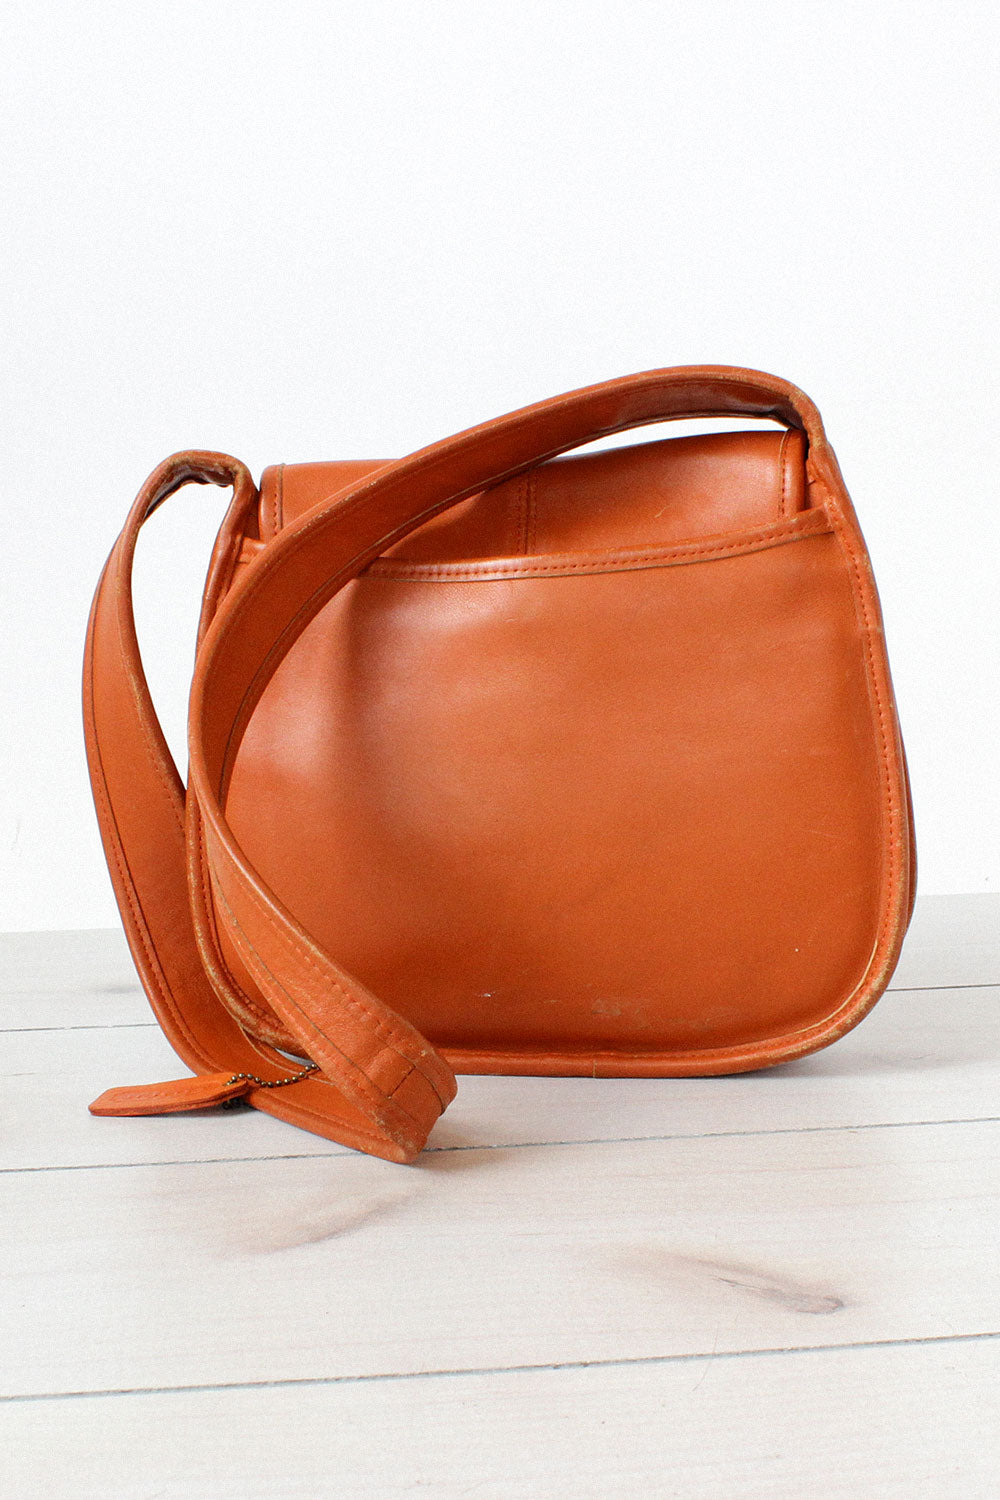 Tangerine Leather Coach Bag